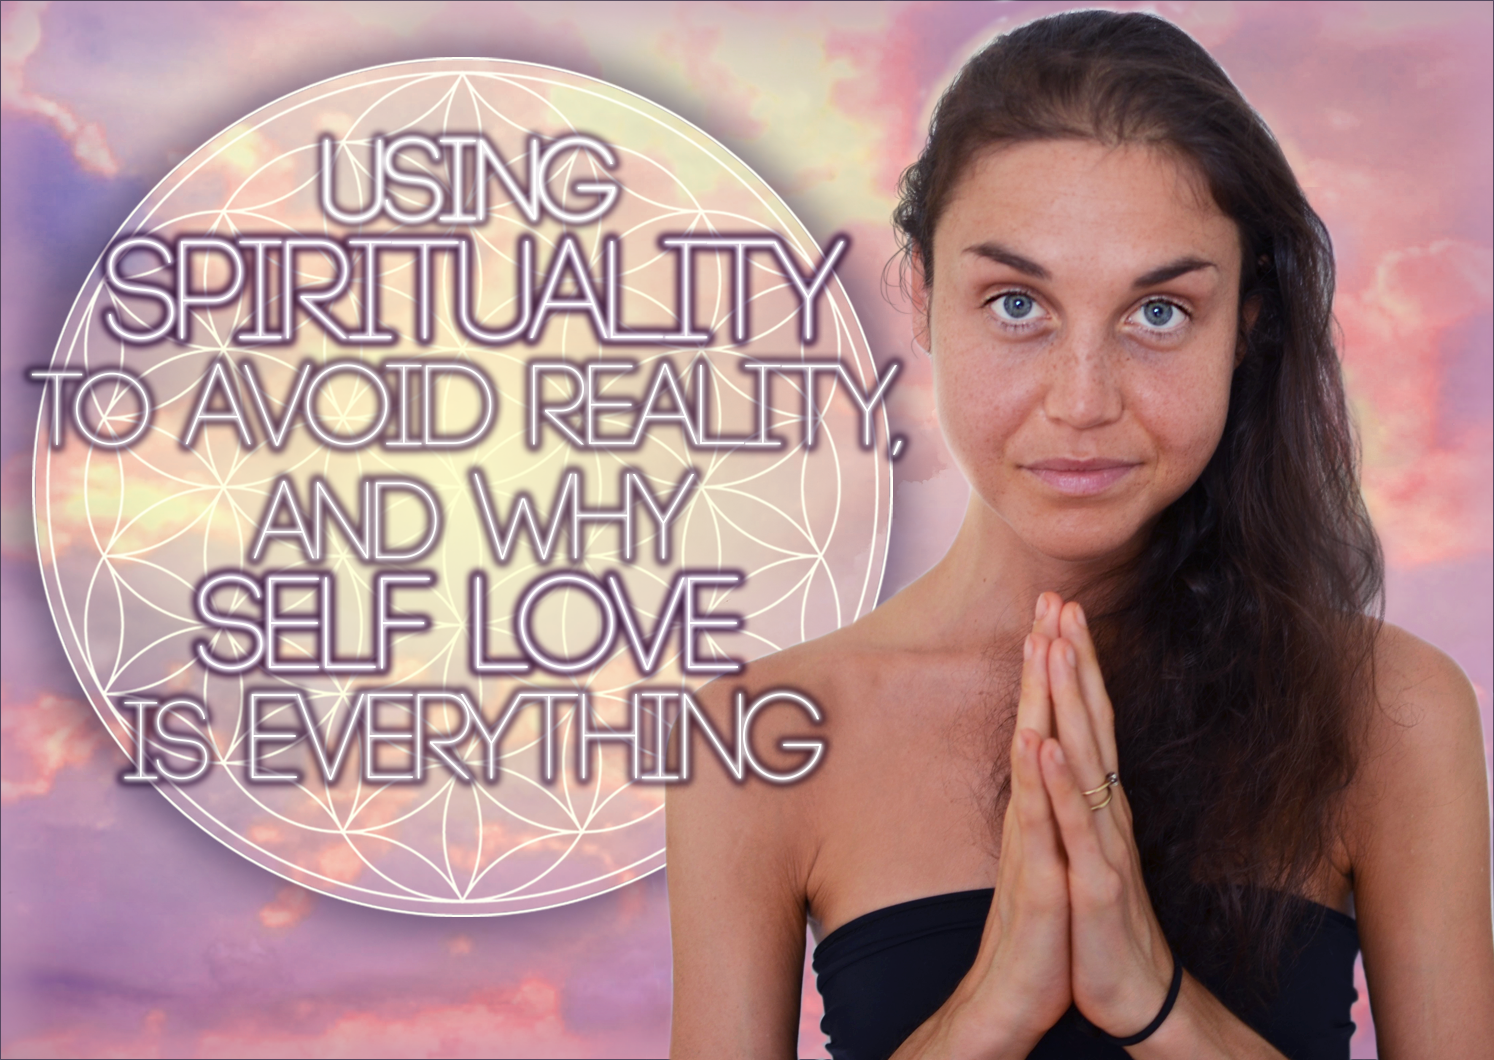 You Exist, Using Spirituality To Avoid Reality And Why Self Love Is Everything